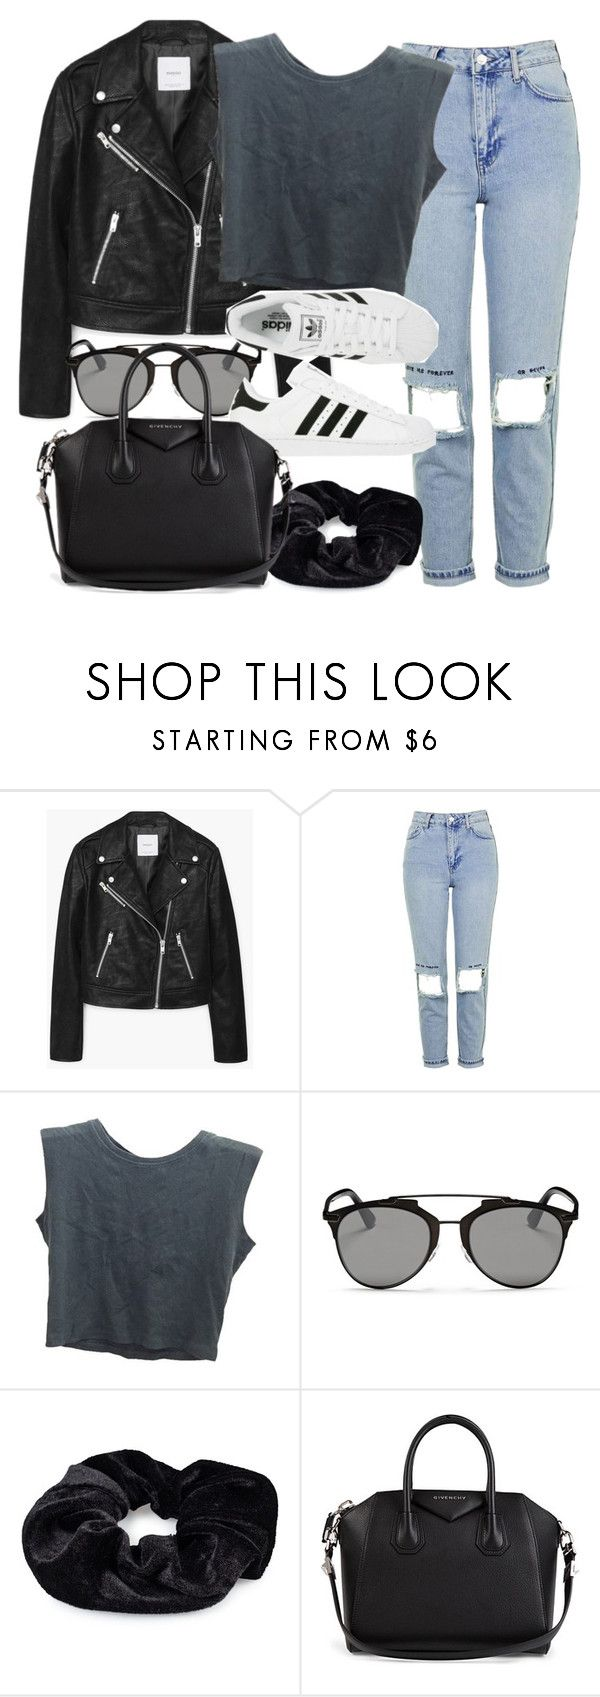 """""""Style #11444"""" by vany-alvarado ❤ liked on Polyvore featuring MANGO, Topshop, Brandy Melville, Christian Dior, Pieces, adidas and Givenchy"""